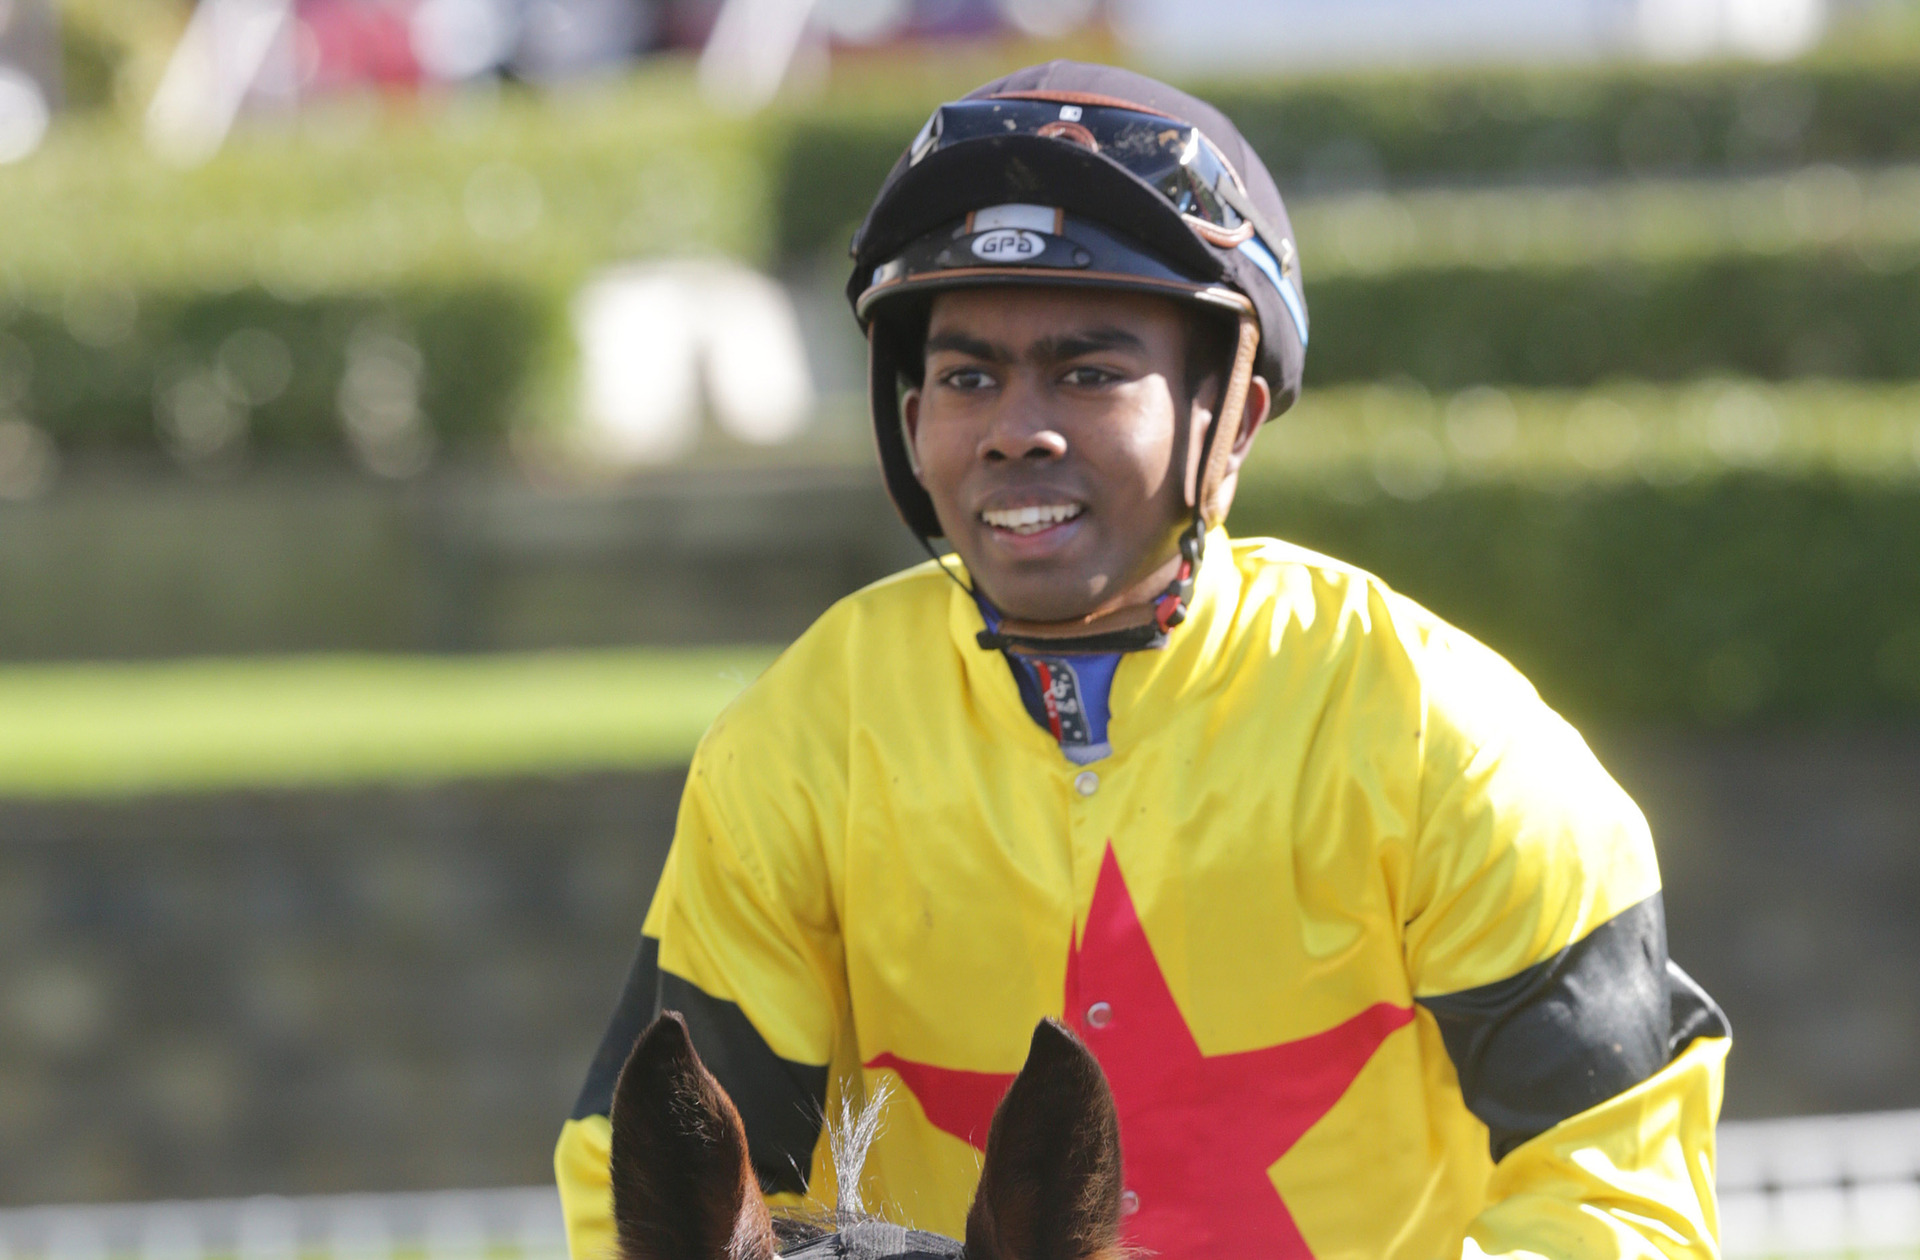 Racing: Make a note of Inscription for spring